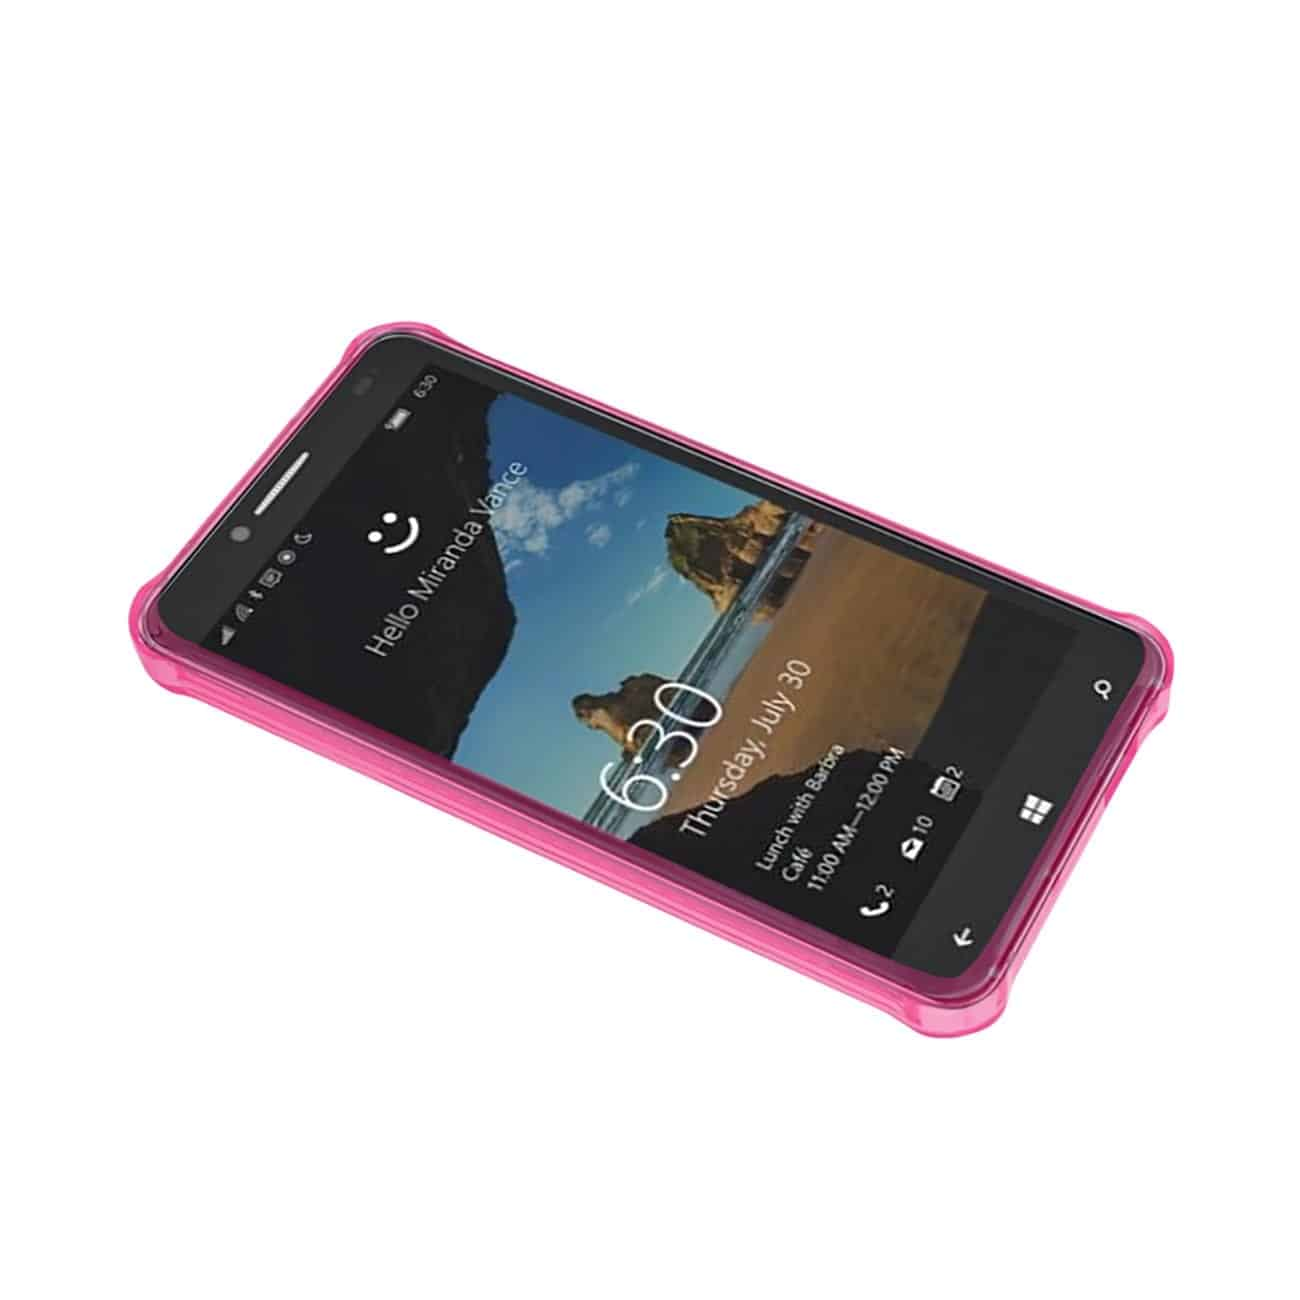 ALCATEL ONE TOUCH FIERCE XL MIRROR EFFECT CASE WITH AIR CUSHION PROTECTION IN CLEAR HOT PINK